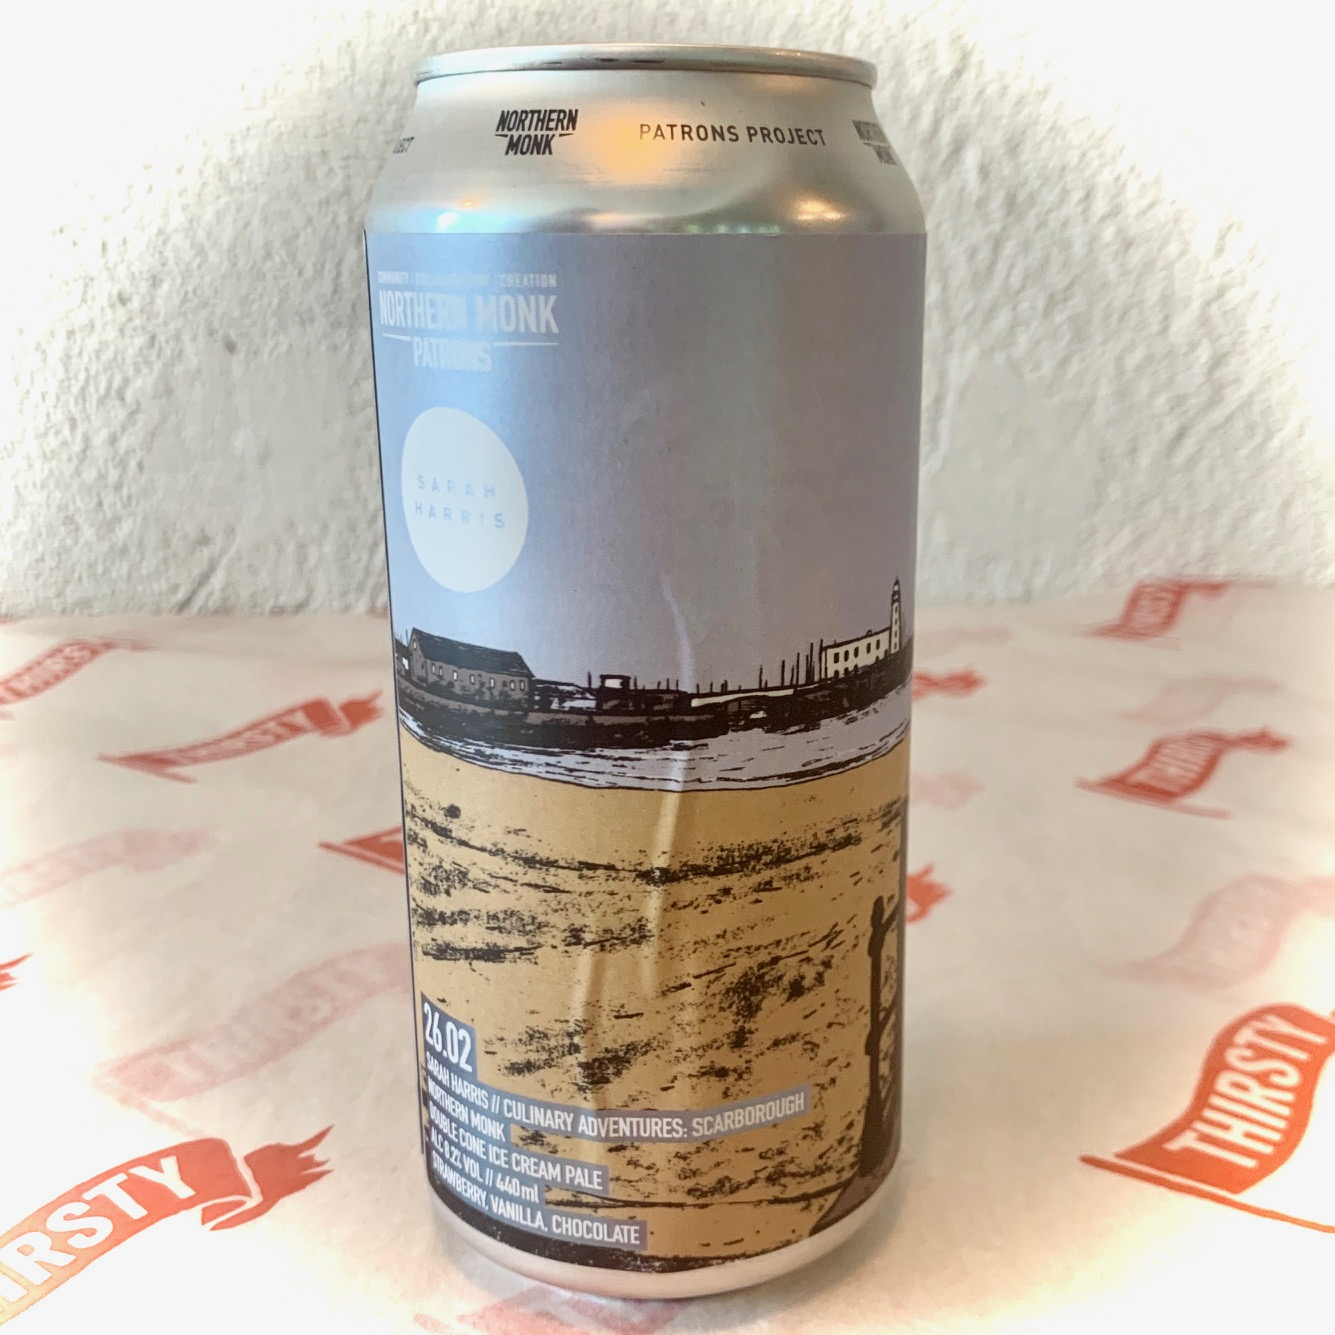 Northern Monk | Scarborough Double Cone Ice Cream Pale | 8.2% 440ml